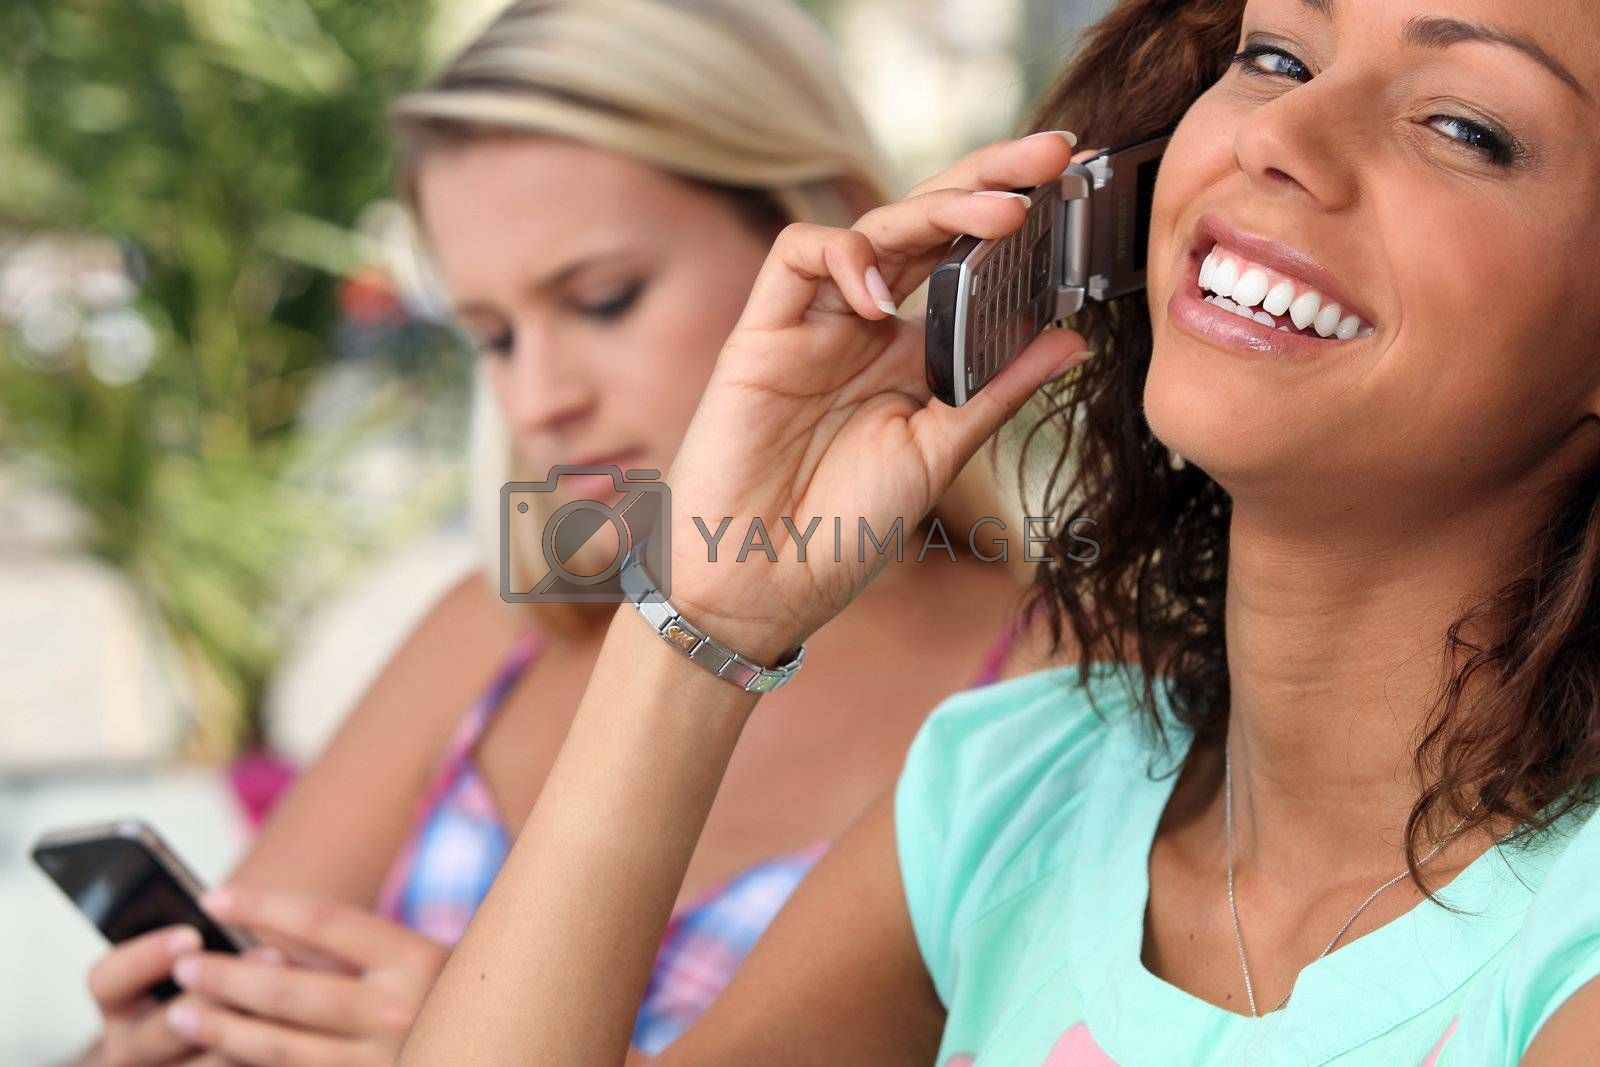 Young women embracing technology